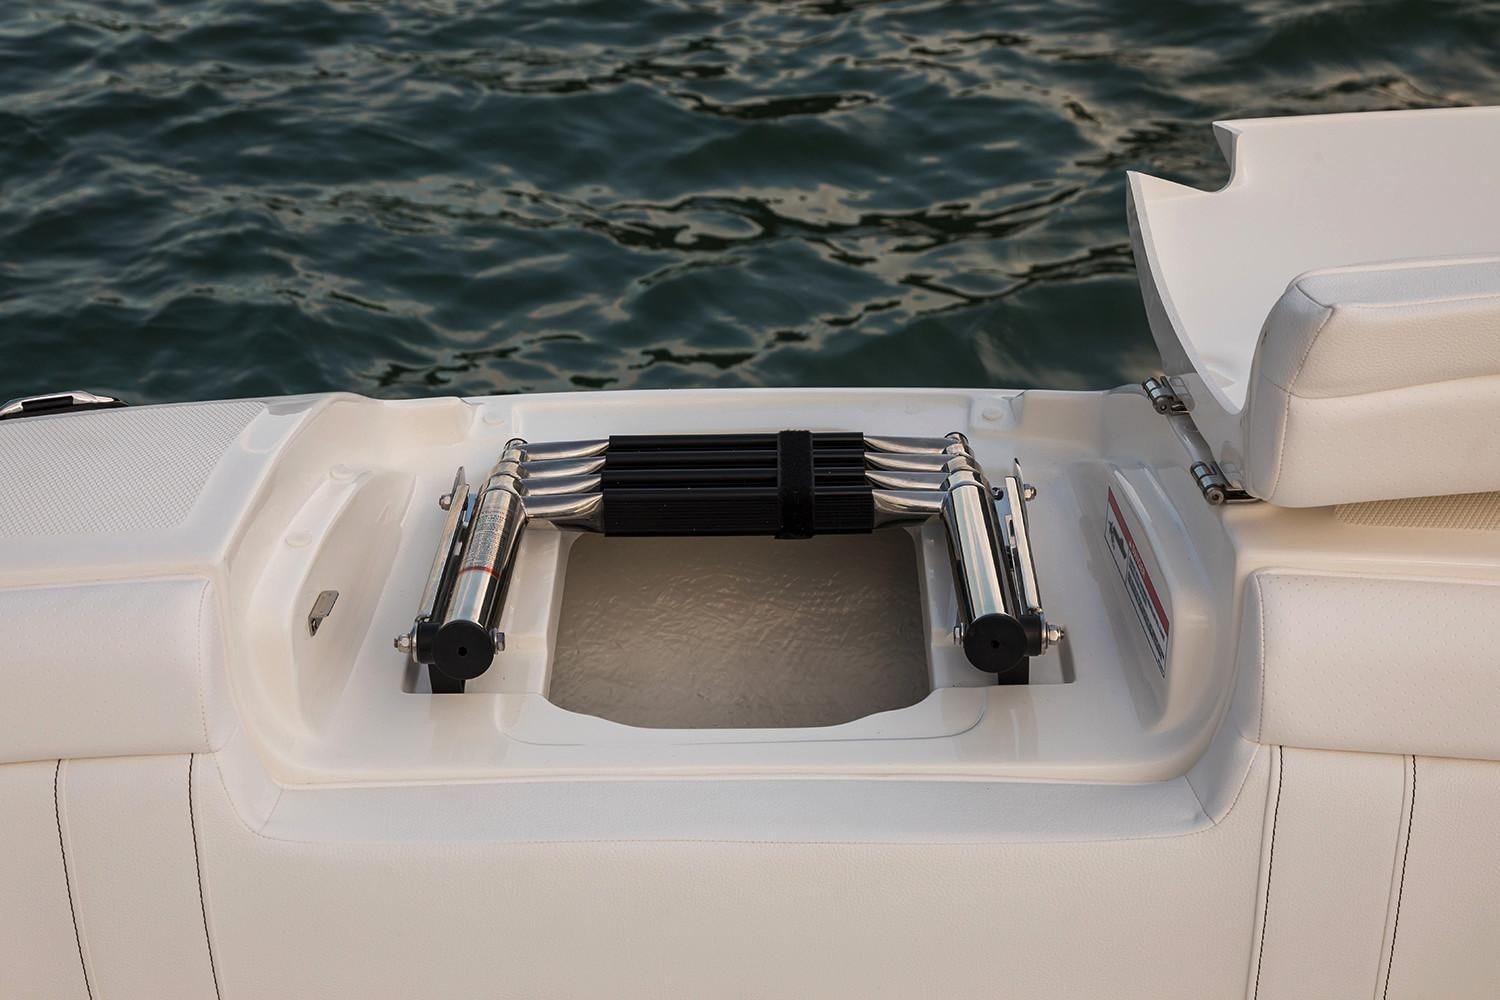 2021 Sea Ray                                                              SDX 270 Outboard Image Thumbnail #11